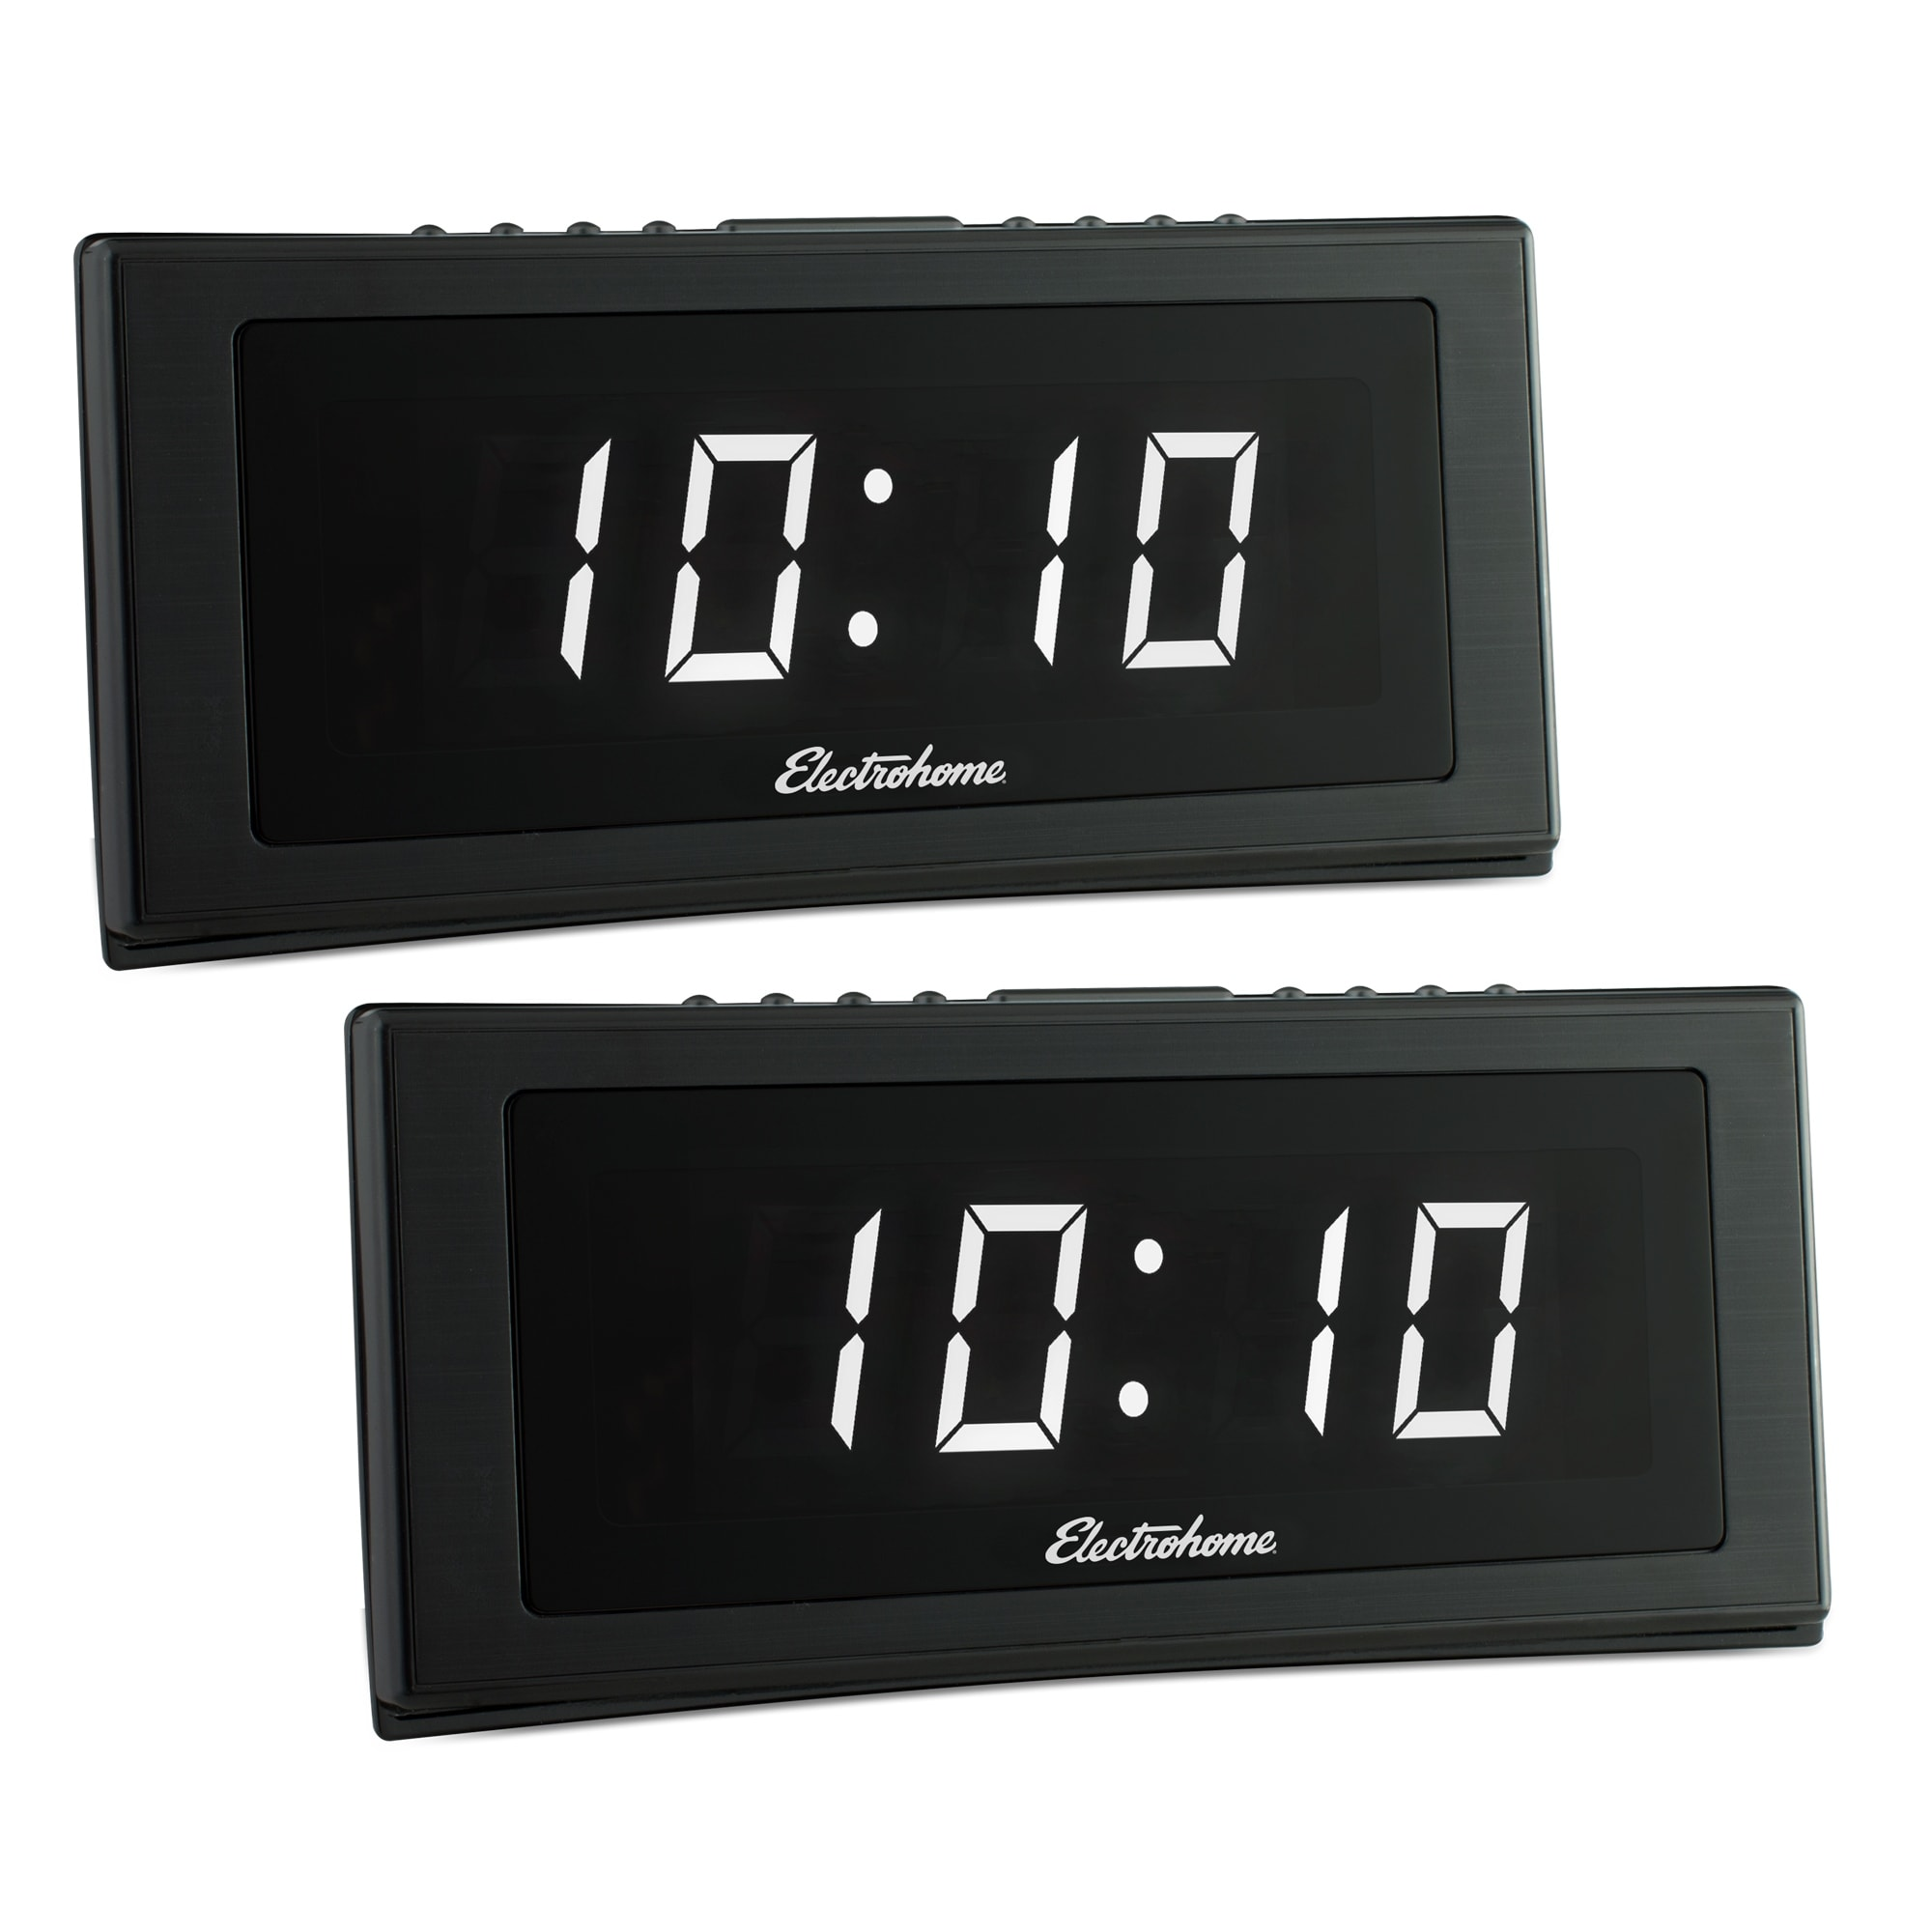 Electrohome 1 8 Jumbo Led Alarm Clock Radio With Battery Backup Auto Time Set Digital Am Fm Tuner 2 Pack Free Shipping On Orders Over 45